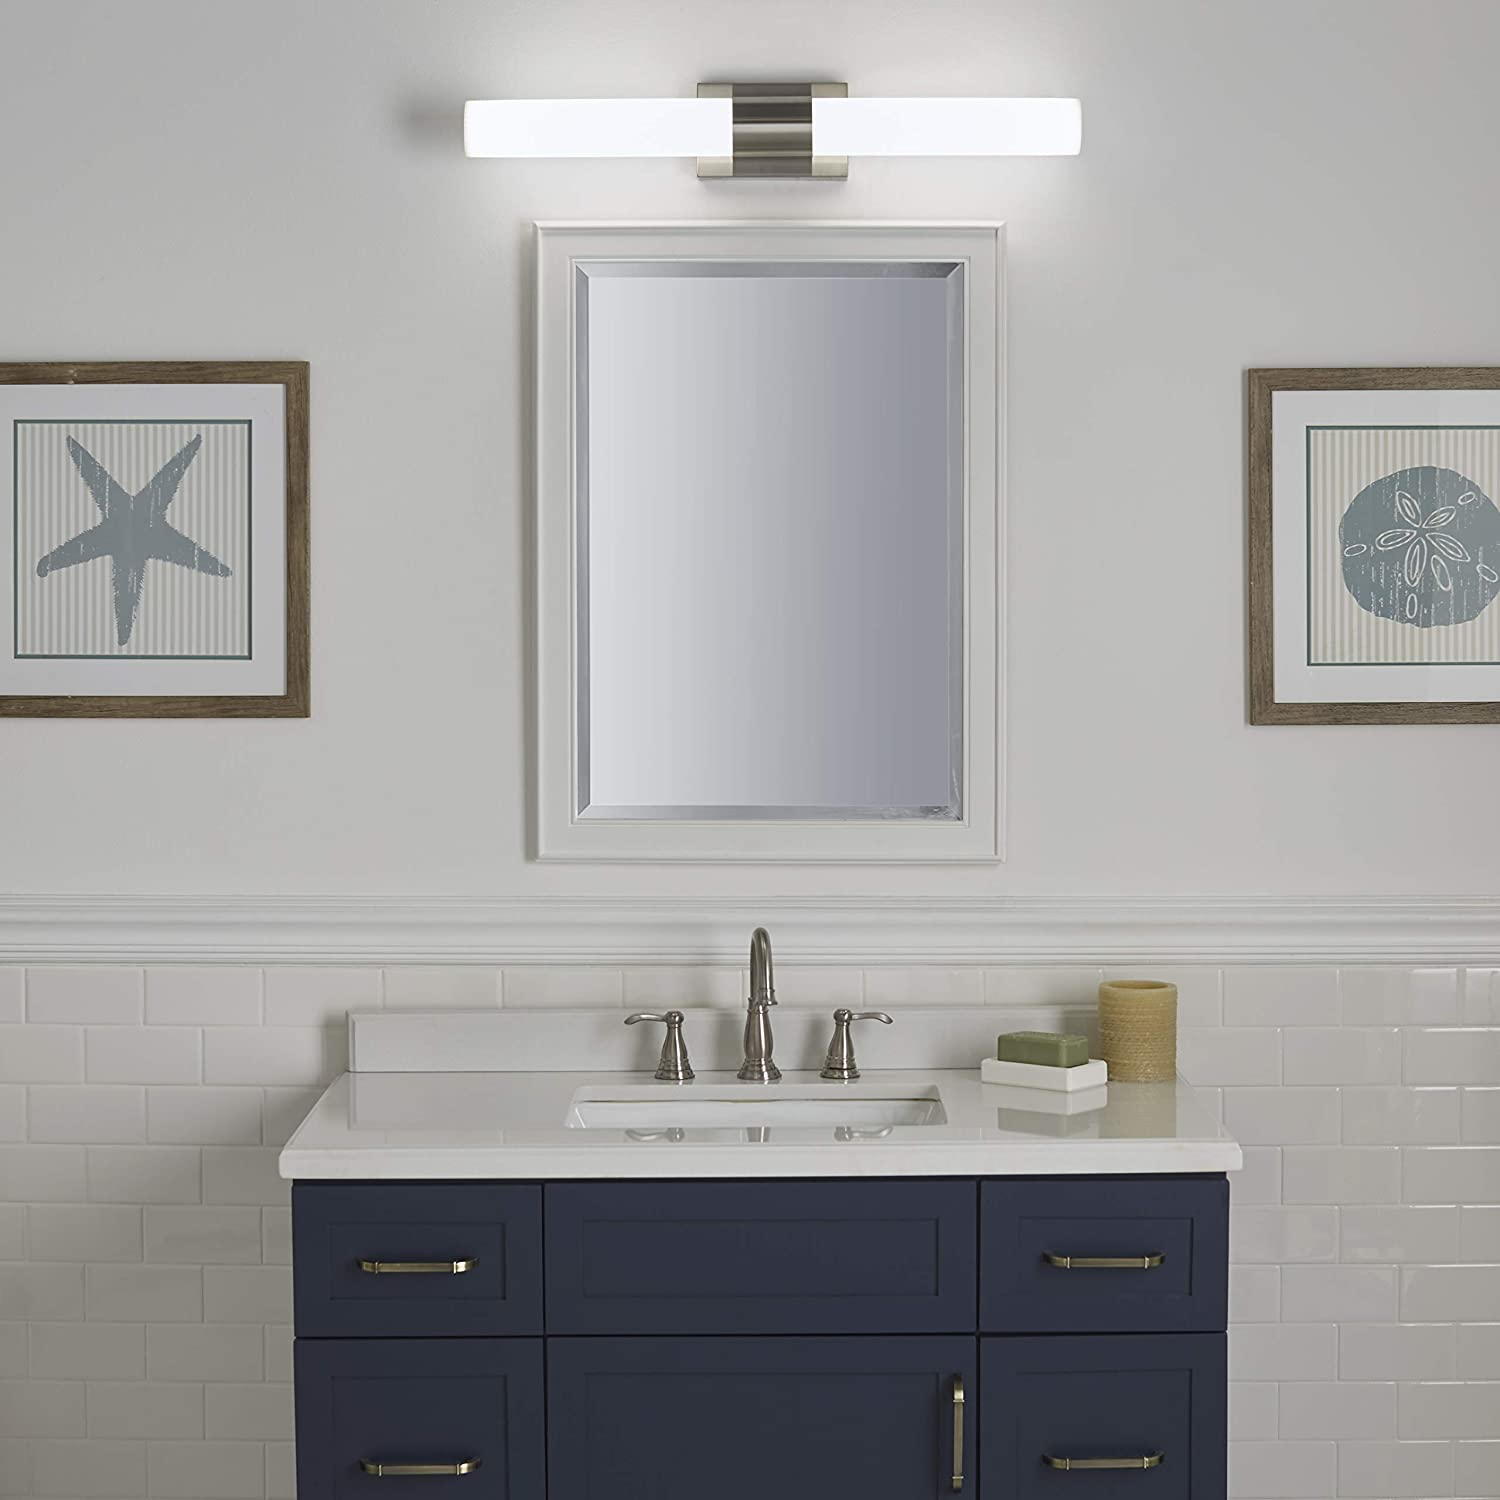 Integrated LED Bathroom Vanity Light